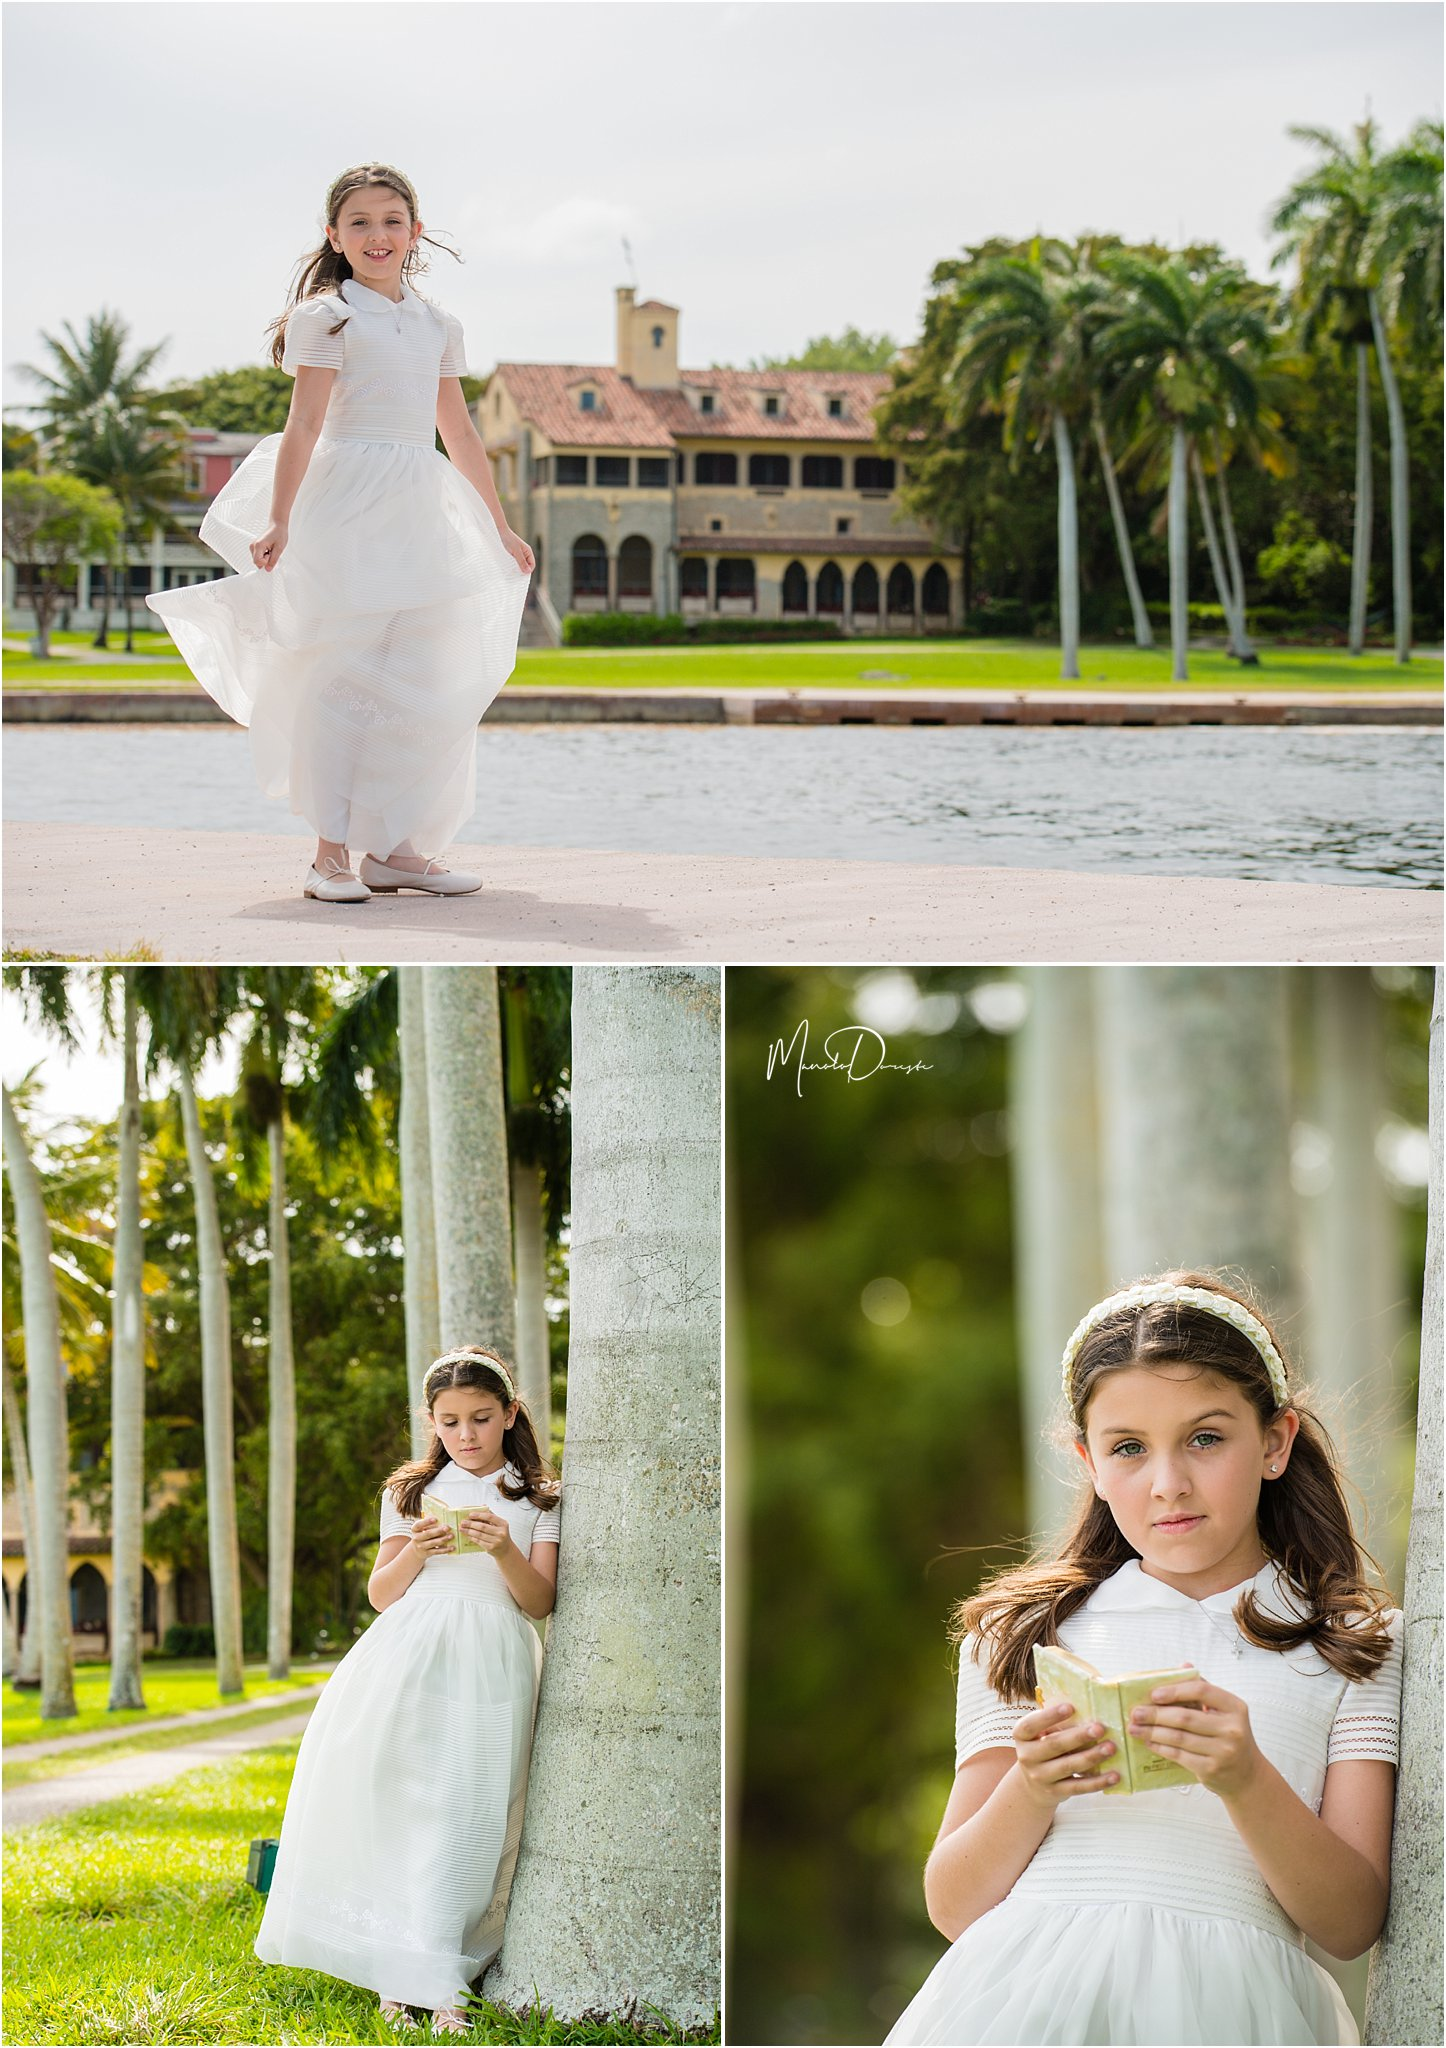 0624_ManoloDoreste_InFocusStudios_Wedding_Family_Photography_Miami_MiamiPhotographer.jpg